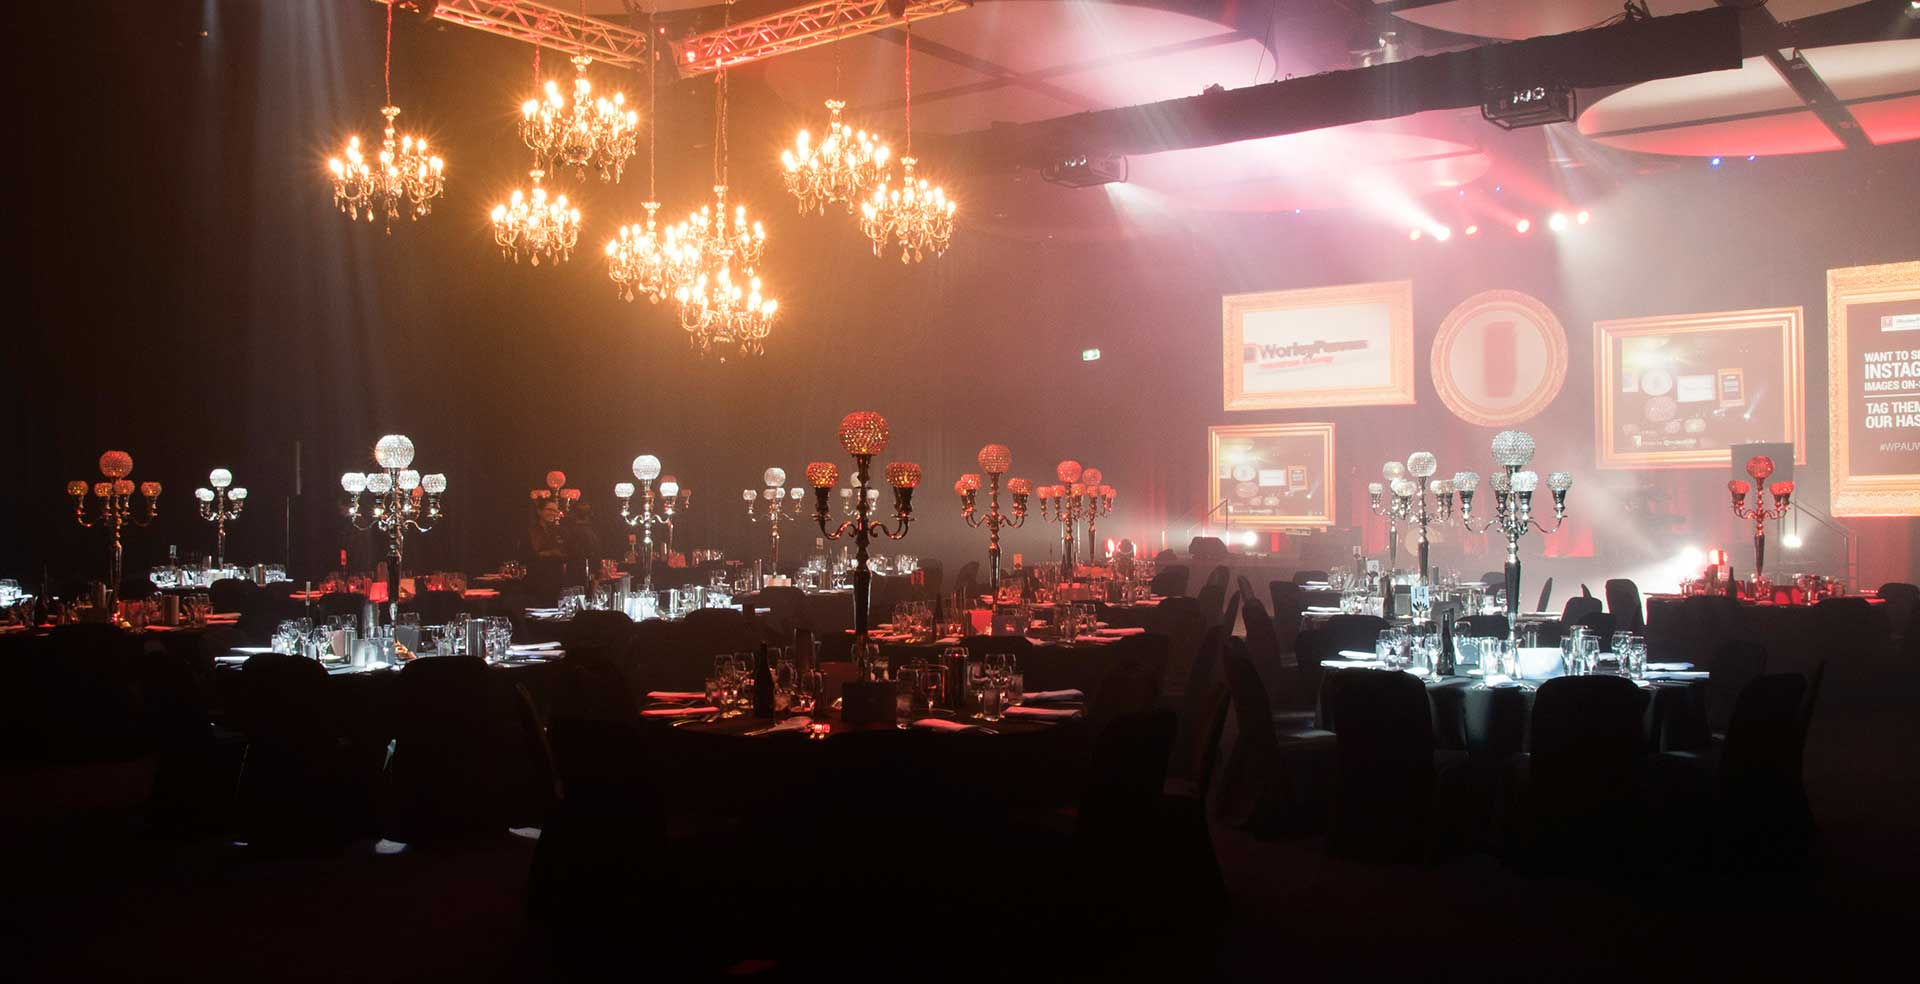 Worley Parsons Ball